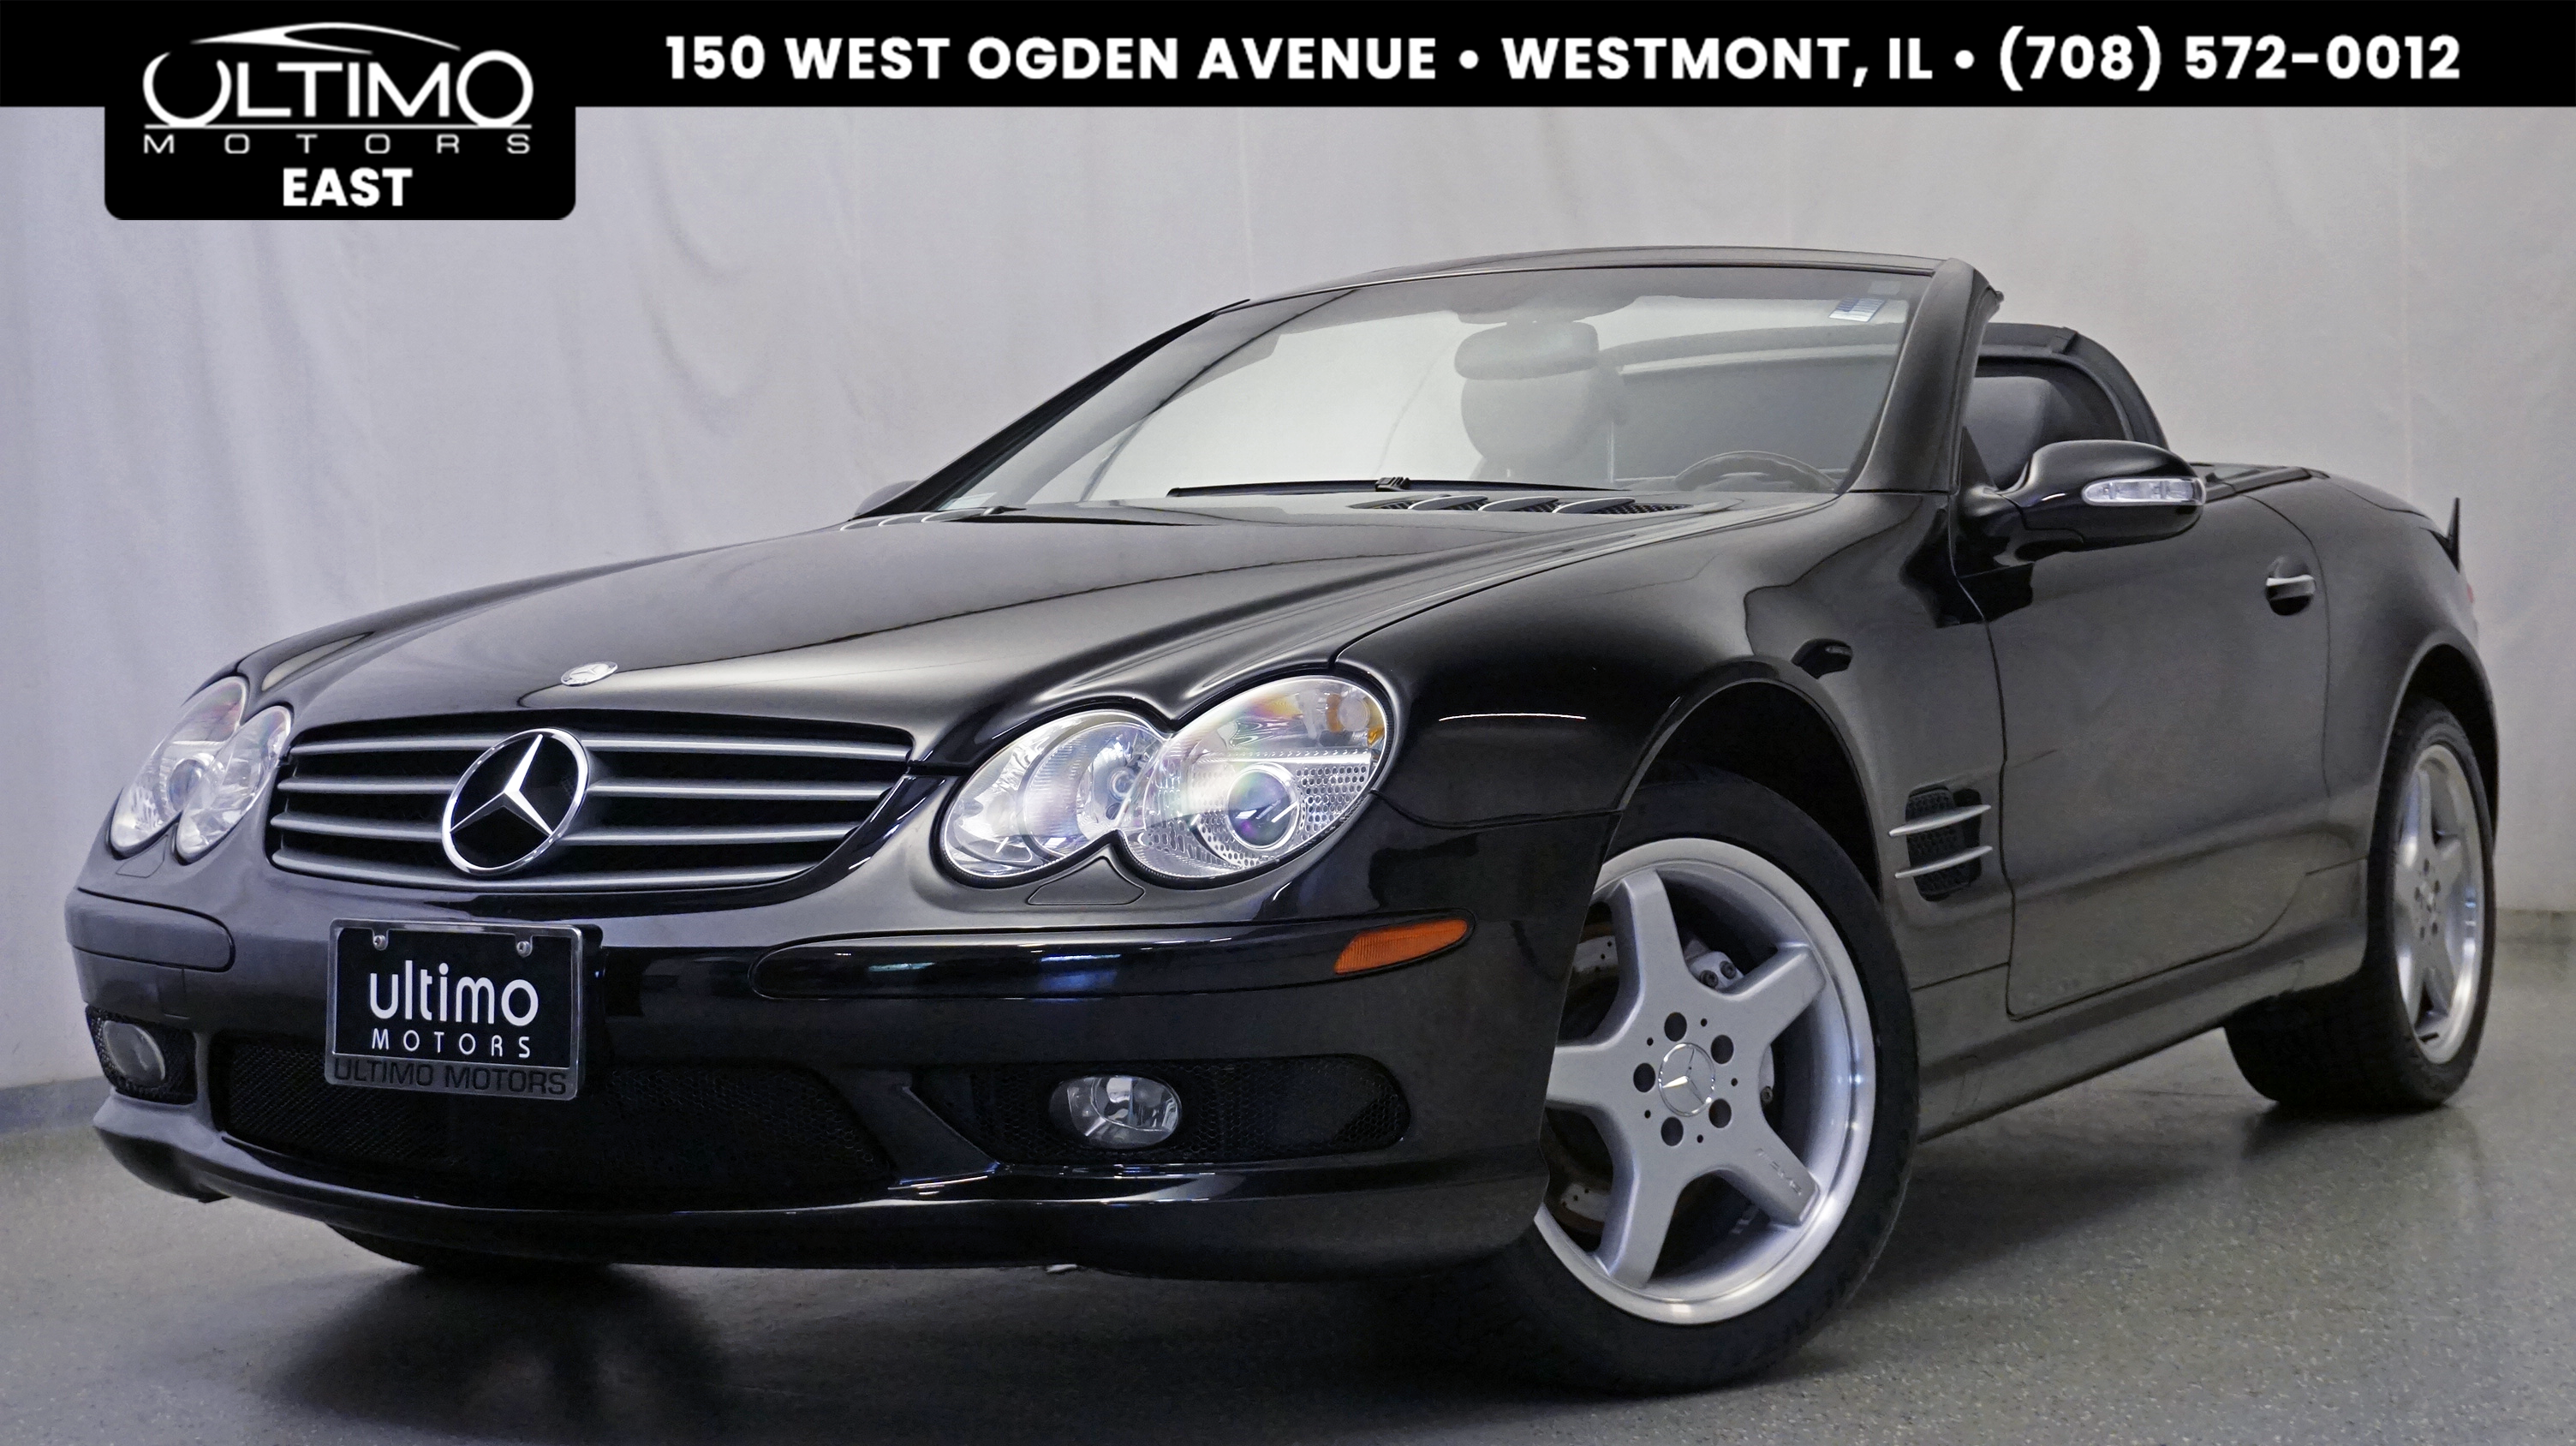 Pre Owned 2003 Mercedes Benz SL Class SL500 Navigation, Heated U0026 Vent